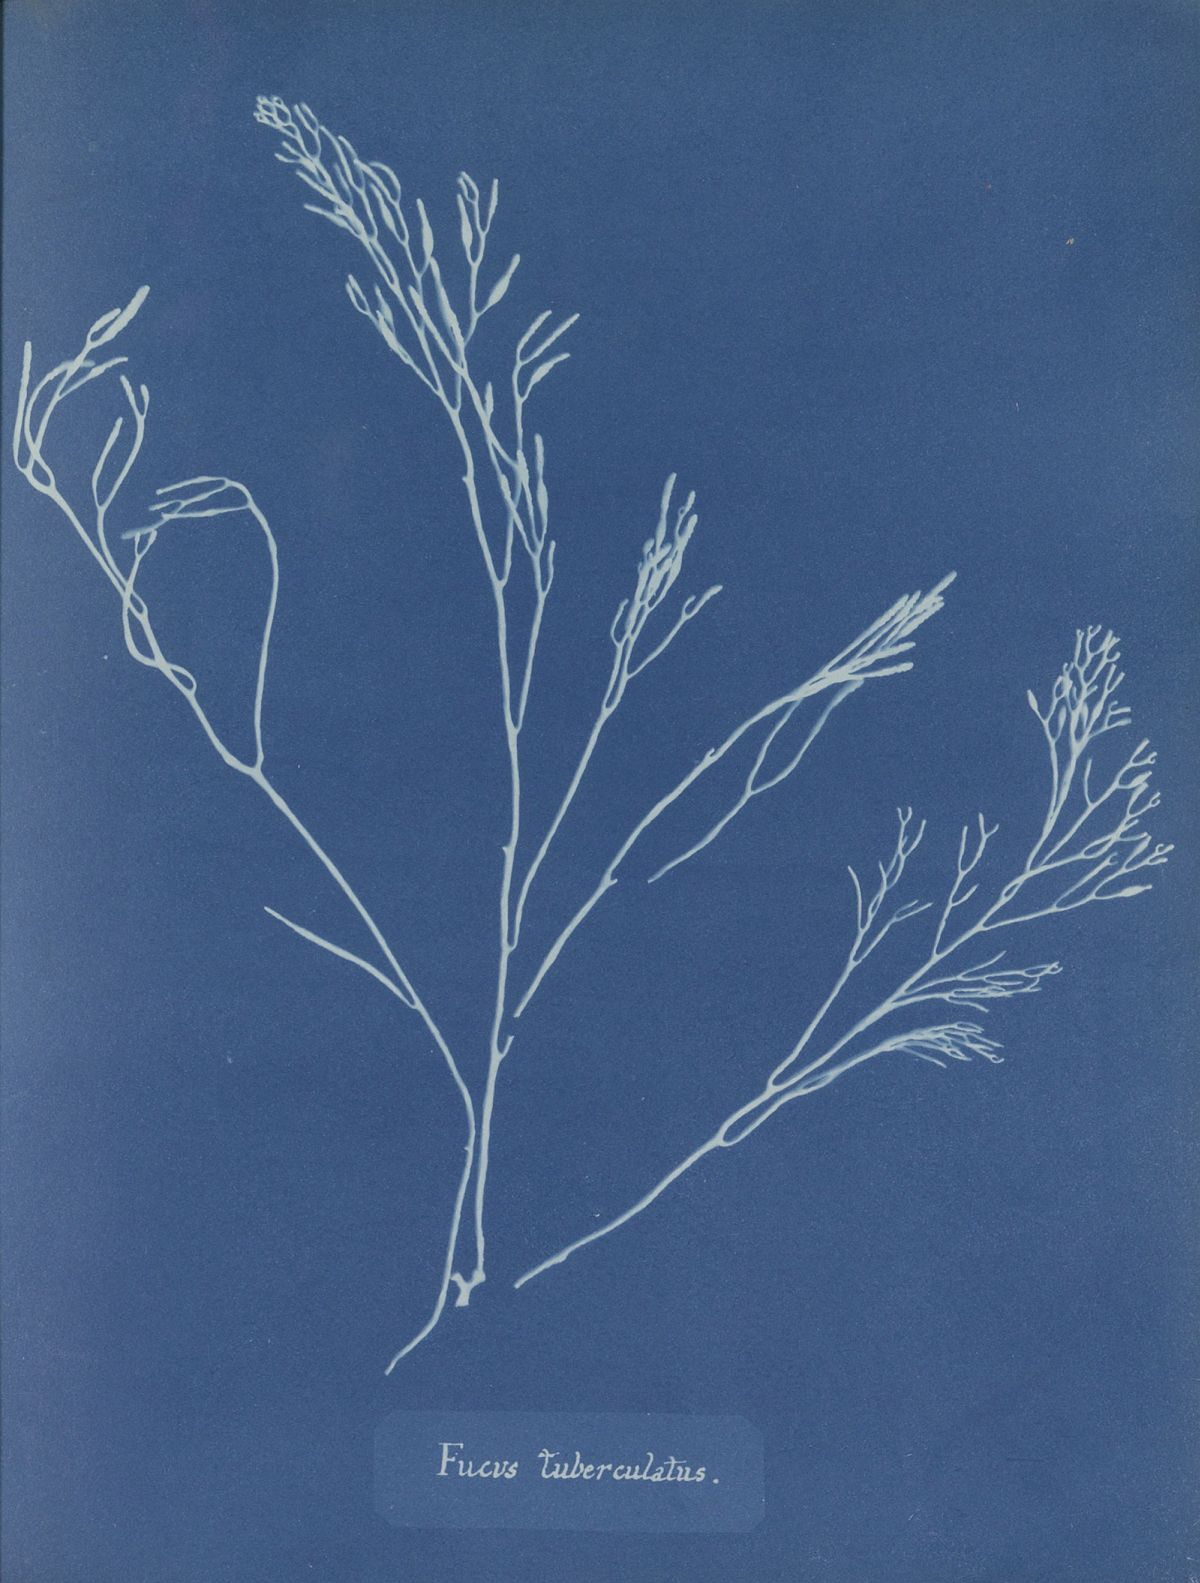 A cyanotype photogram made by Anna Atkins